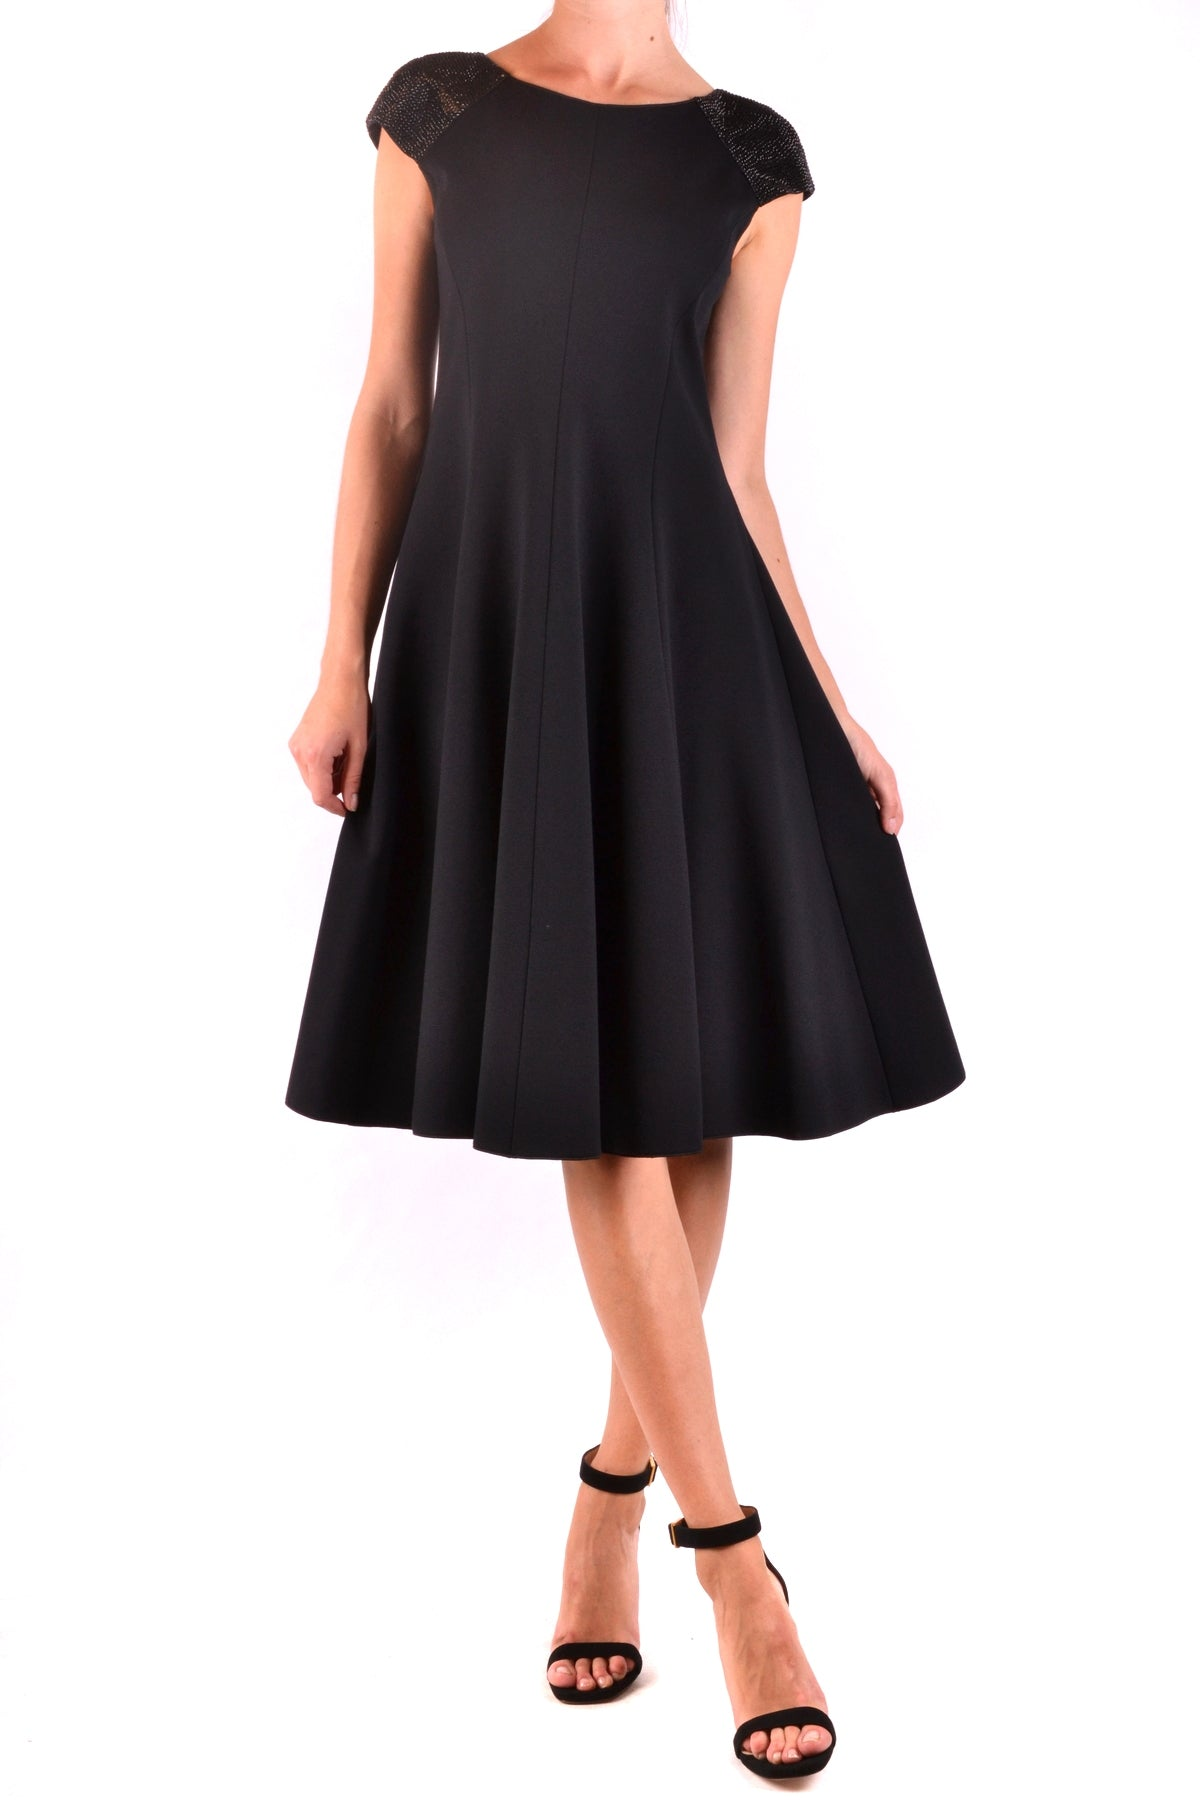 Dress Armani Collezioni-Dress - WOMAN-40-Product Details Season: Fall / WinterTerms: New With LabelMain Color: BlackGender: WomanMade In: ItalyManufacturer Part Number: 6Yma54 MjfazSize: ItYear: 2018Clothing Type: TaglieurComposition: Elastane 6%, Polyamide 17%, Viscose 77%-Keyomi-Sook